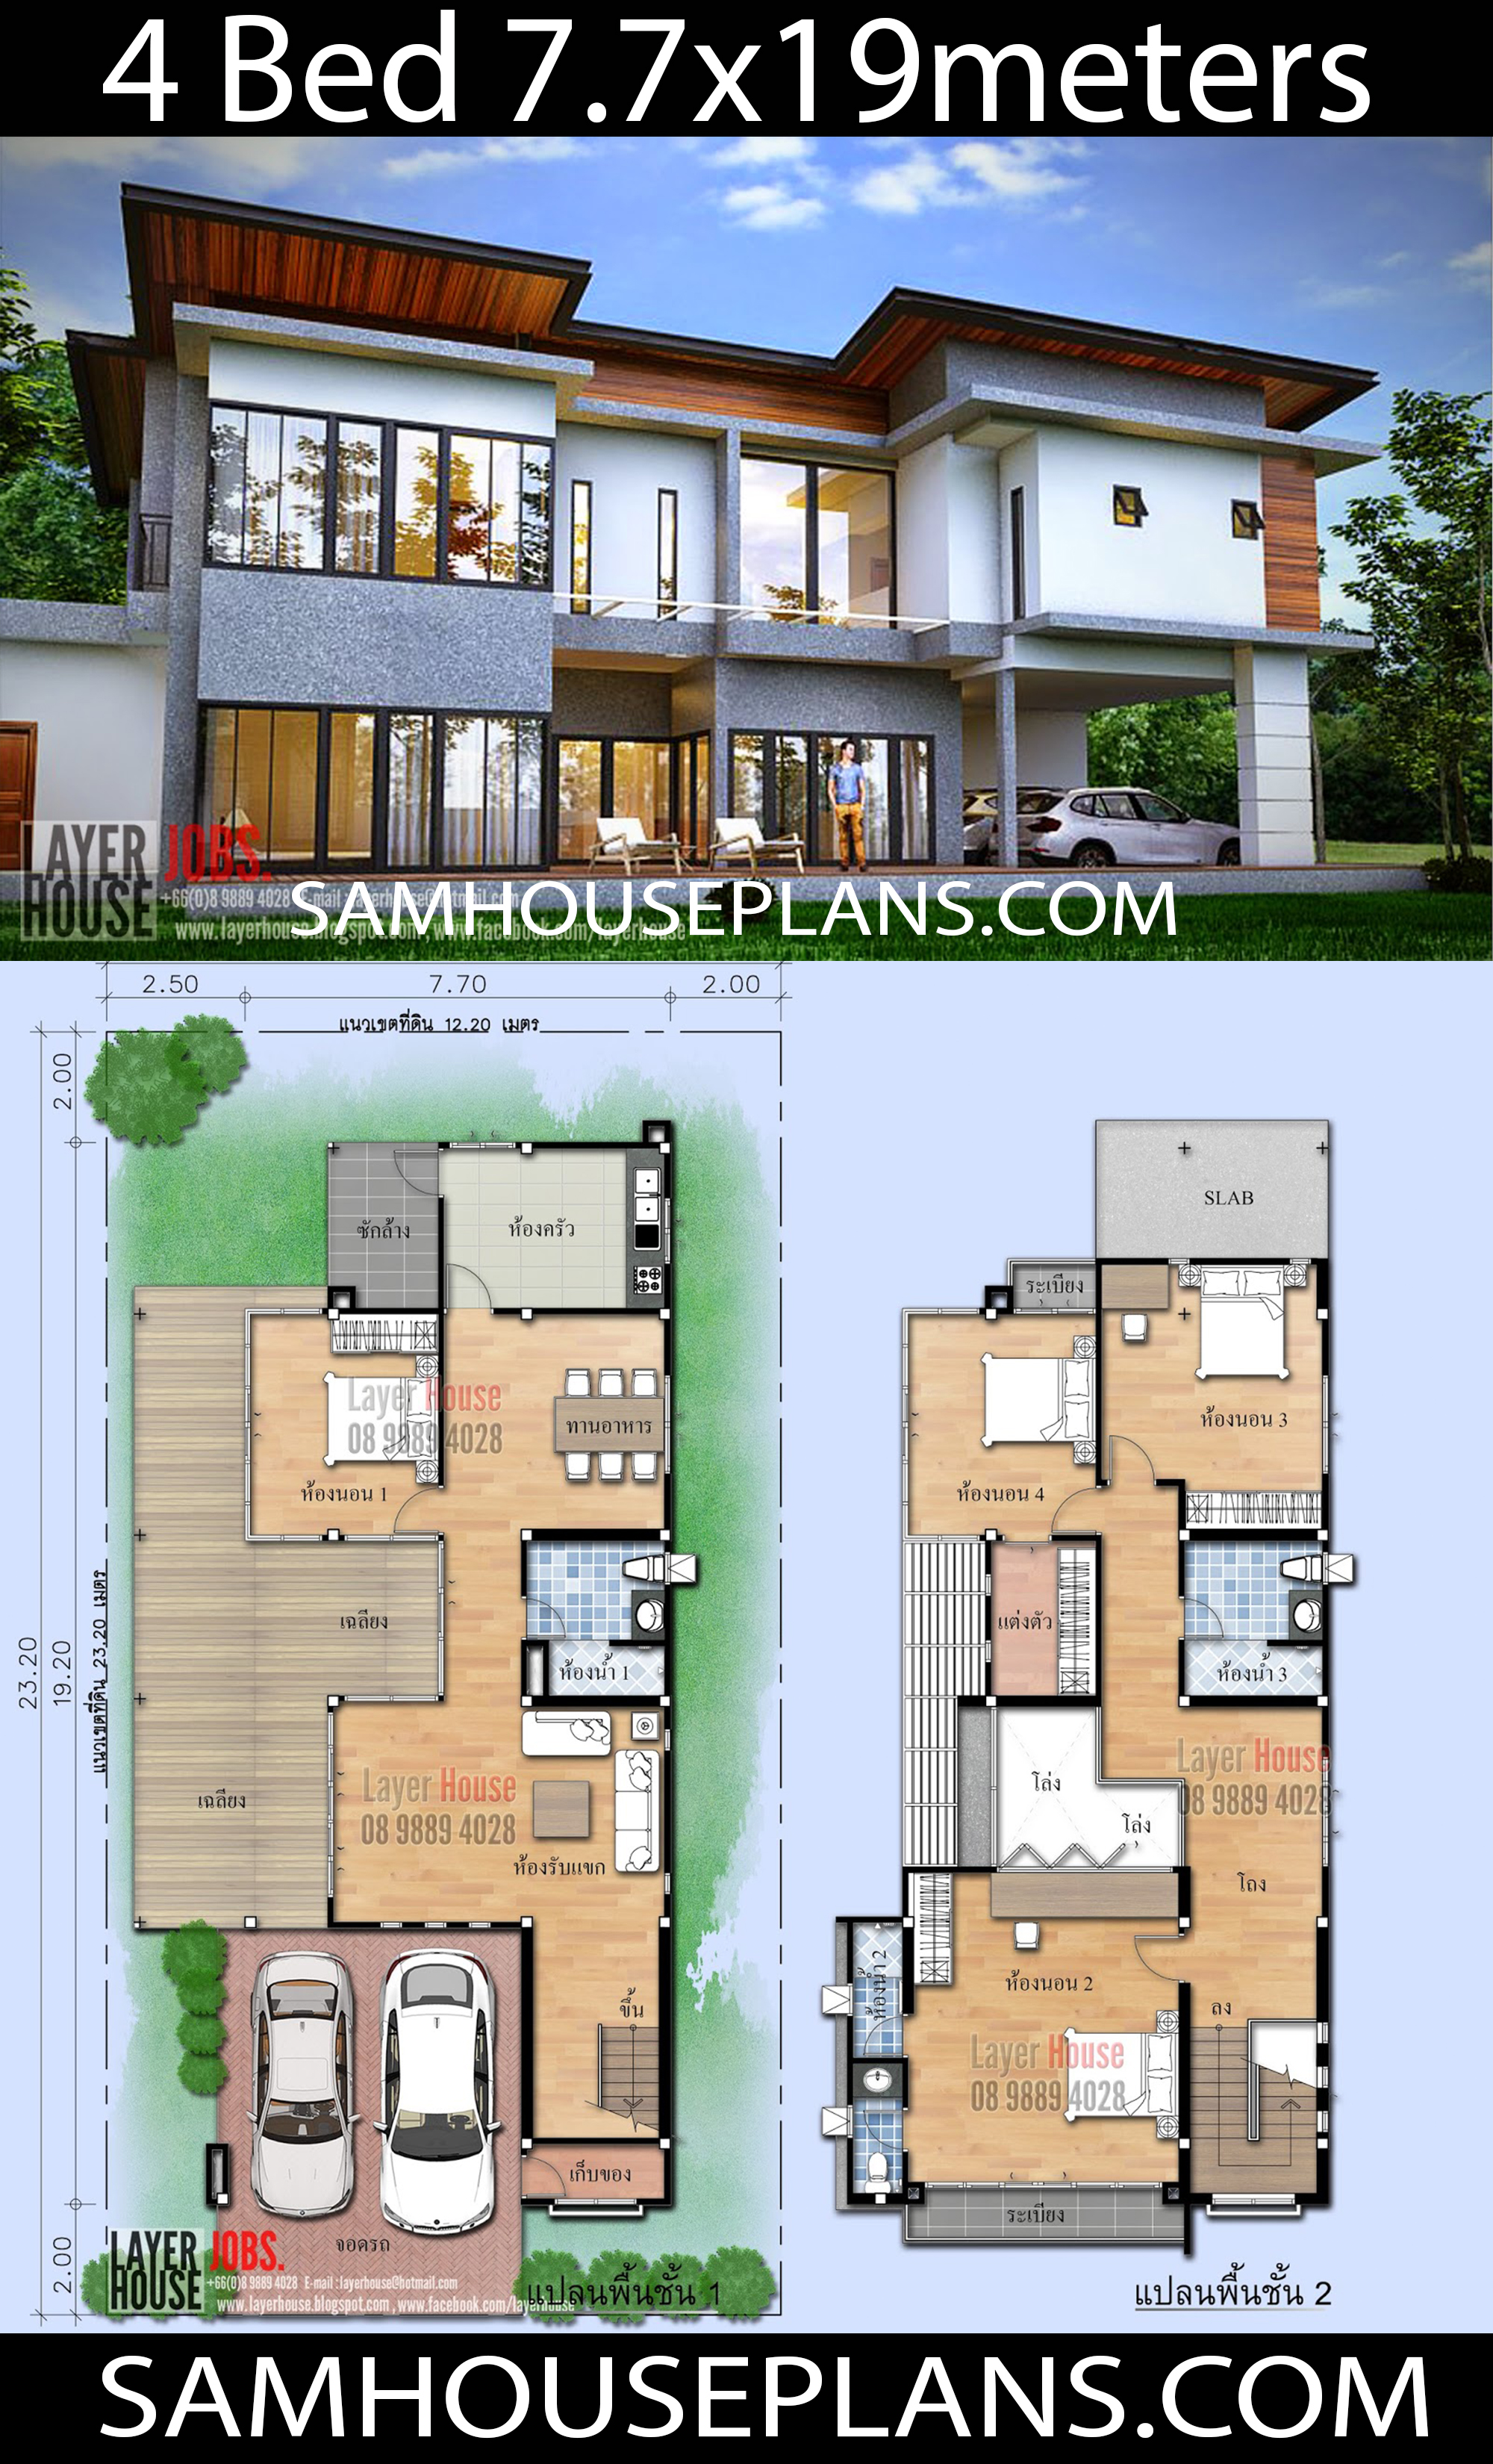 House Plans Idea 7 7x19m With 4 Bedrooms House Plans Free Downloads